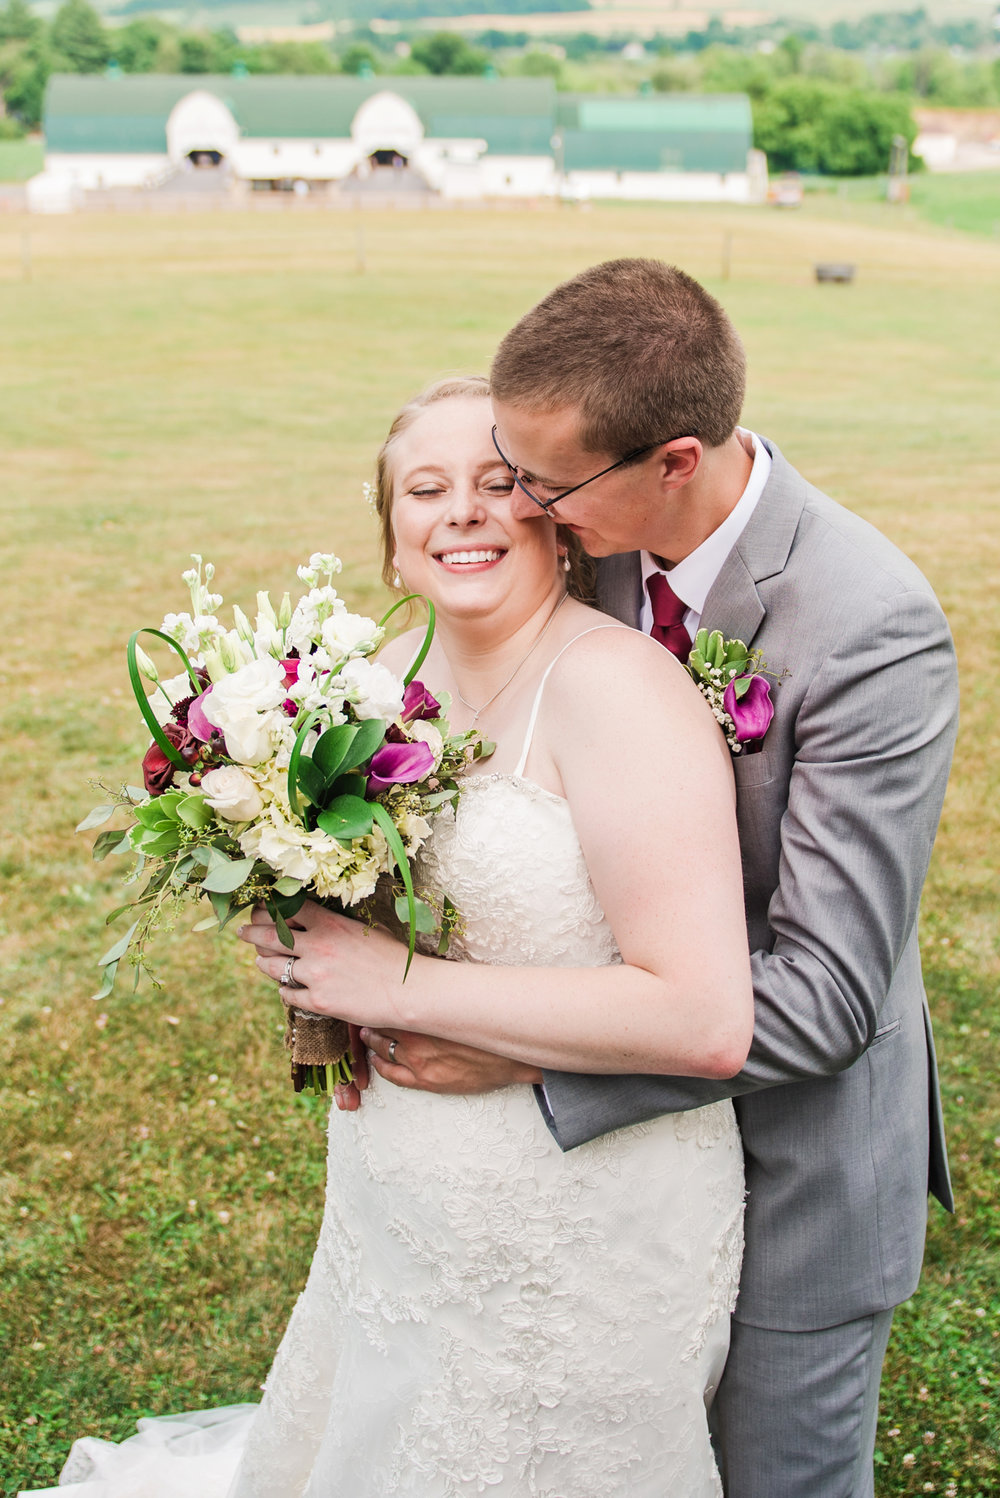 JILLSTUDIO_MKJ_Farms_Central_NY_Wedding_Rochester_NY_Photographer_DSC_8532_1.jpg